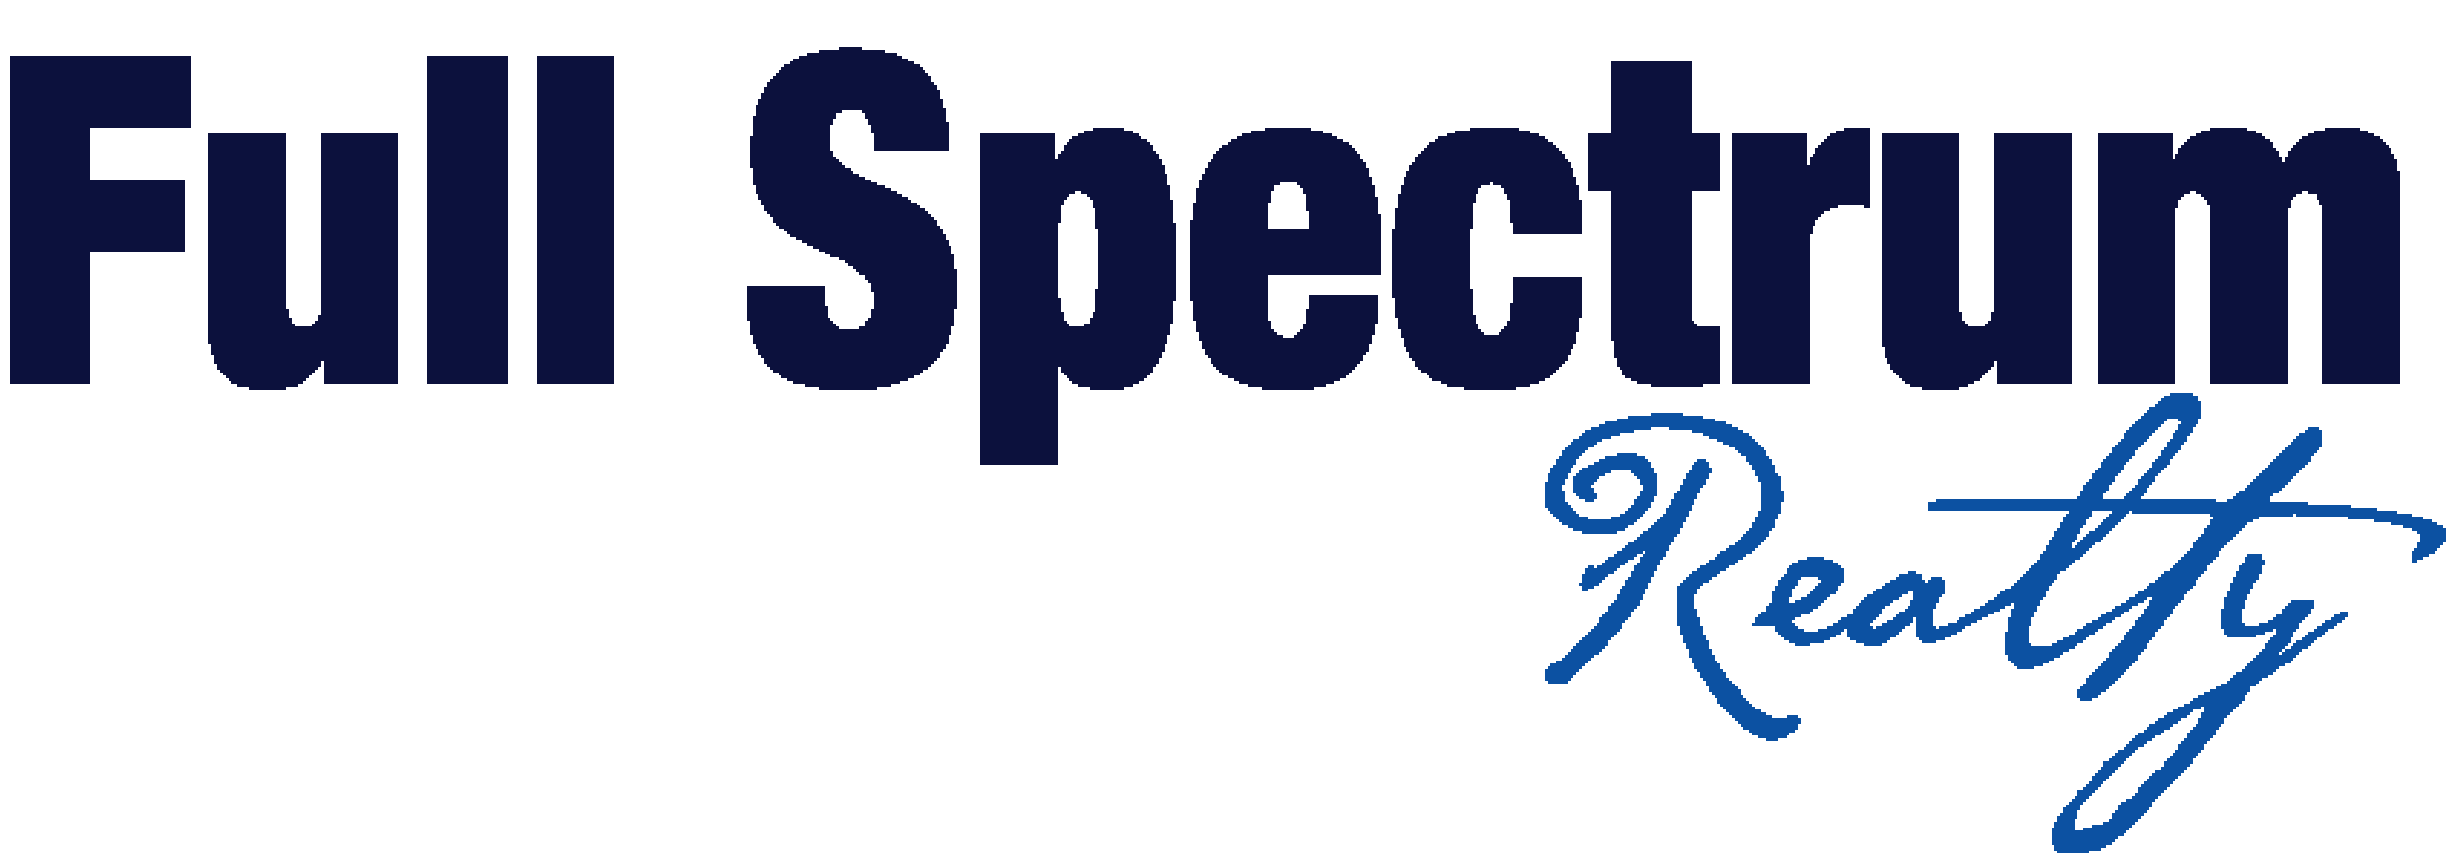 Full Spec Realty Blue@12x.png